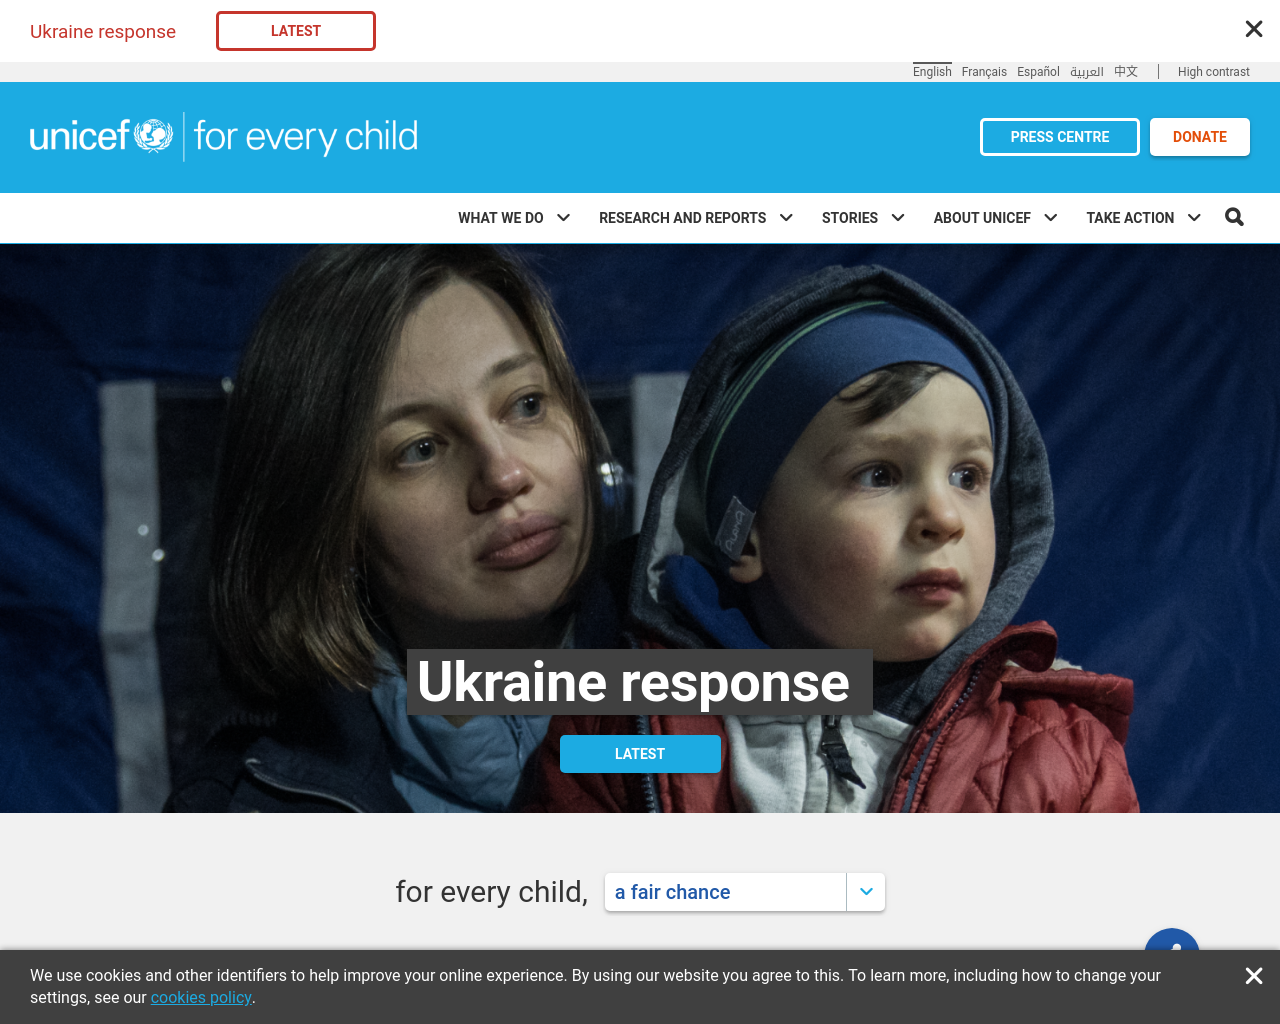 UNICEF Home Page